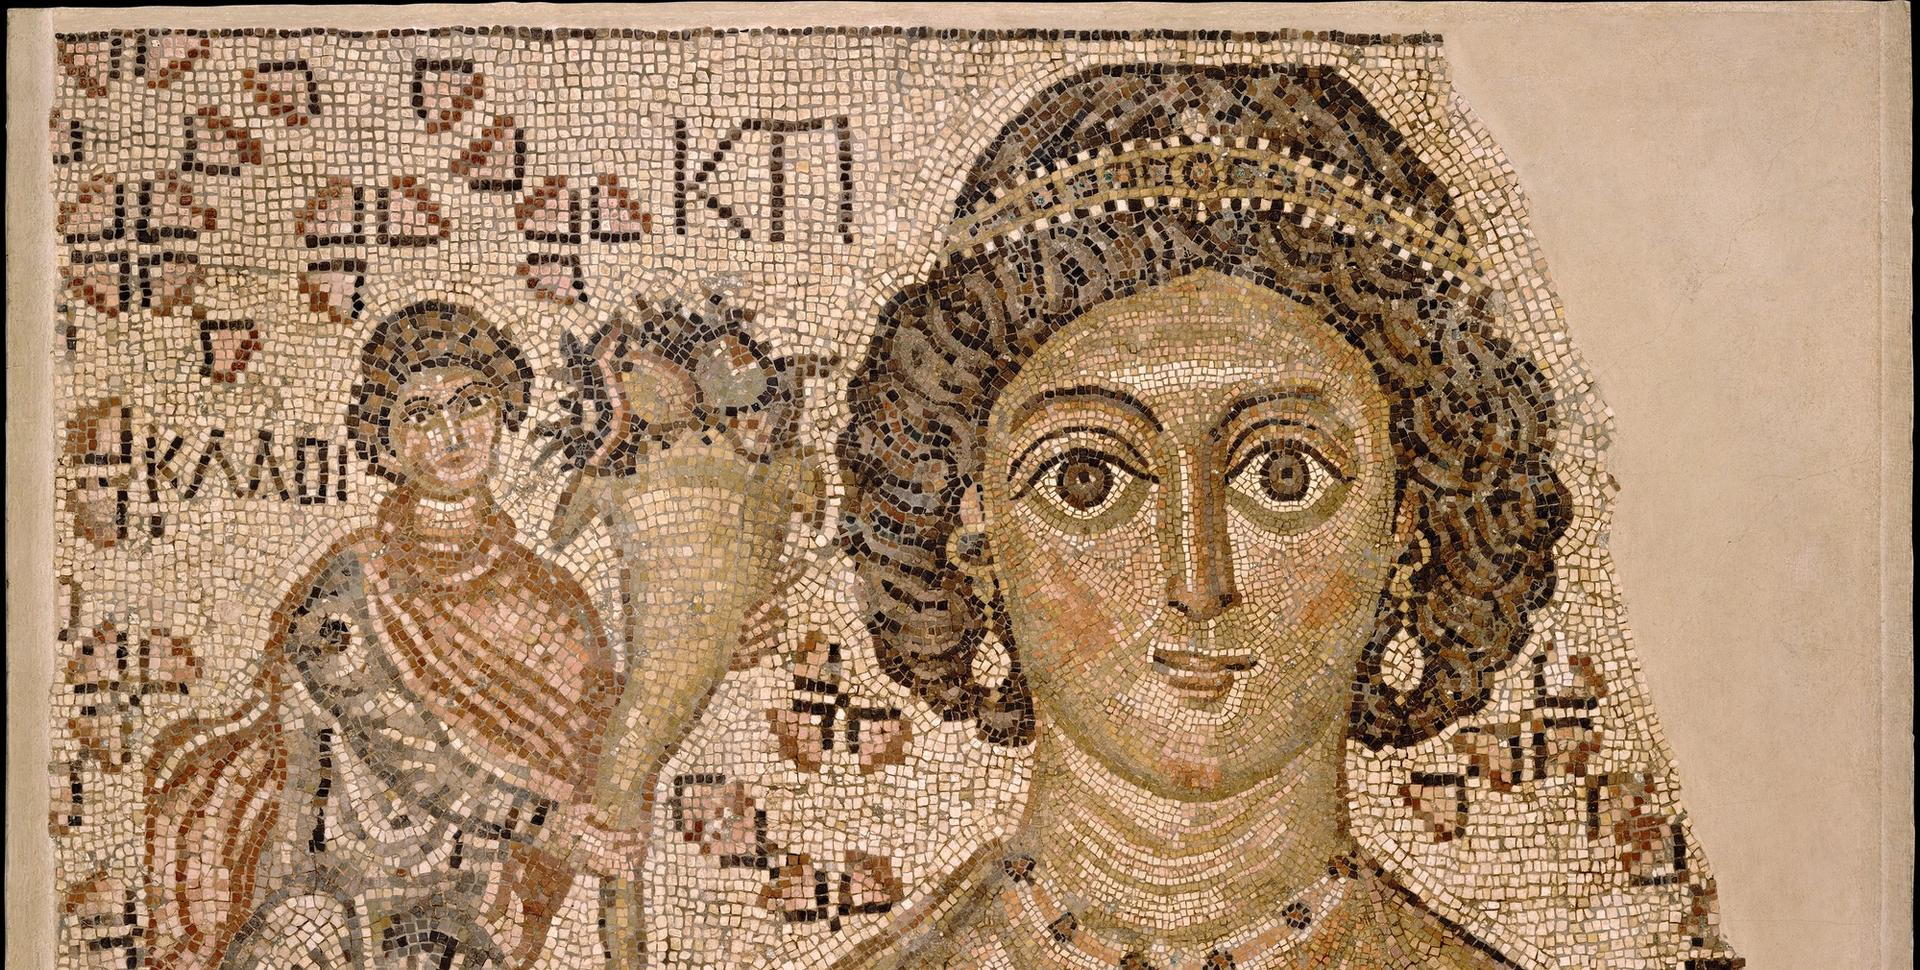 Fragment of a Byzantine floor mosaic with a personification of Ktisis (AD500-550) Courtesy of the Metropolitan Museum of Art, New York